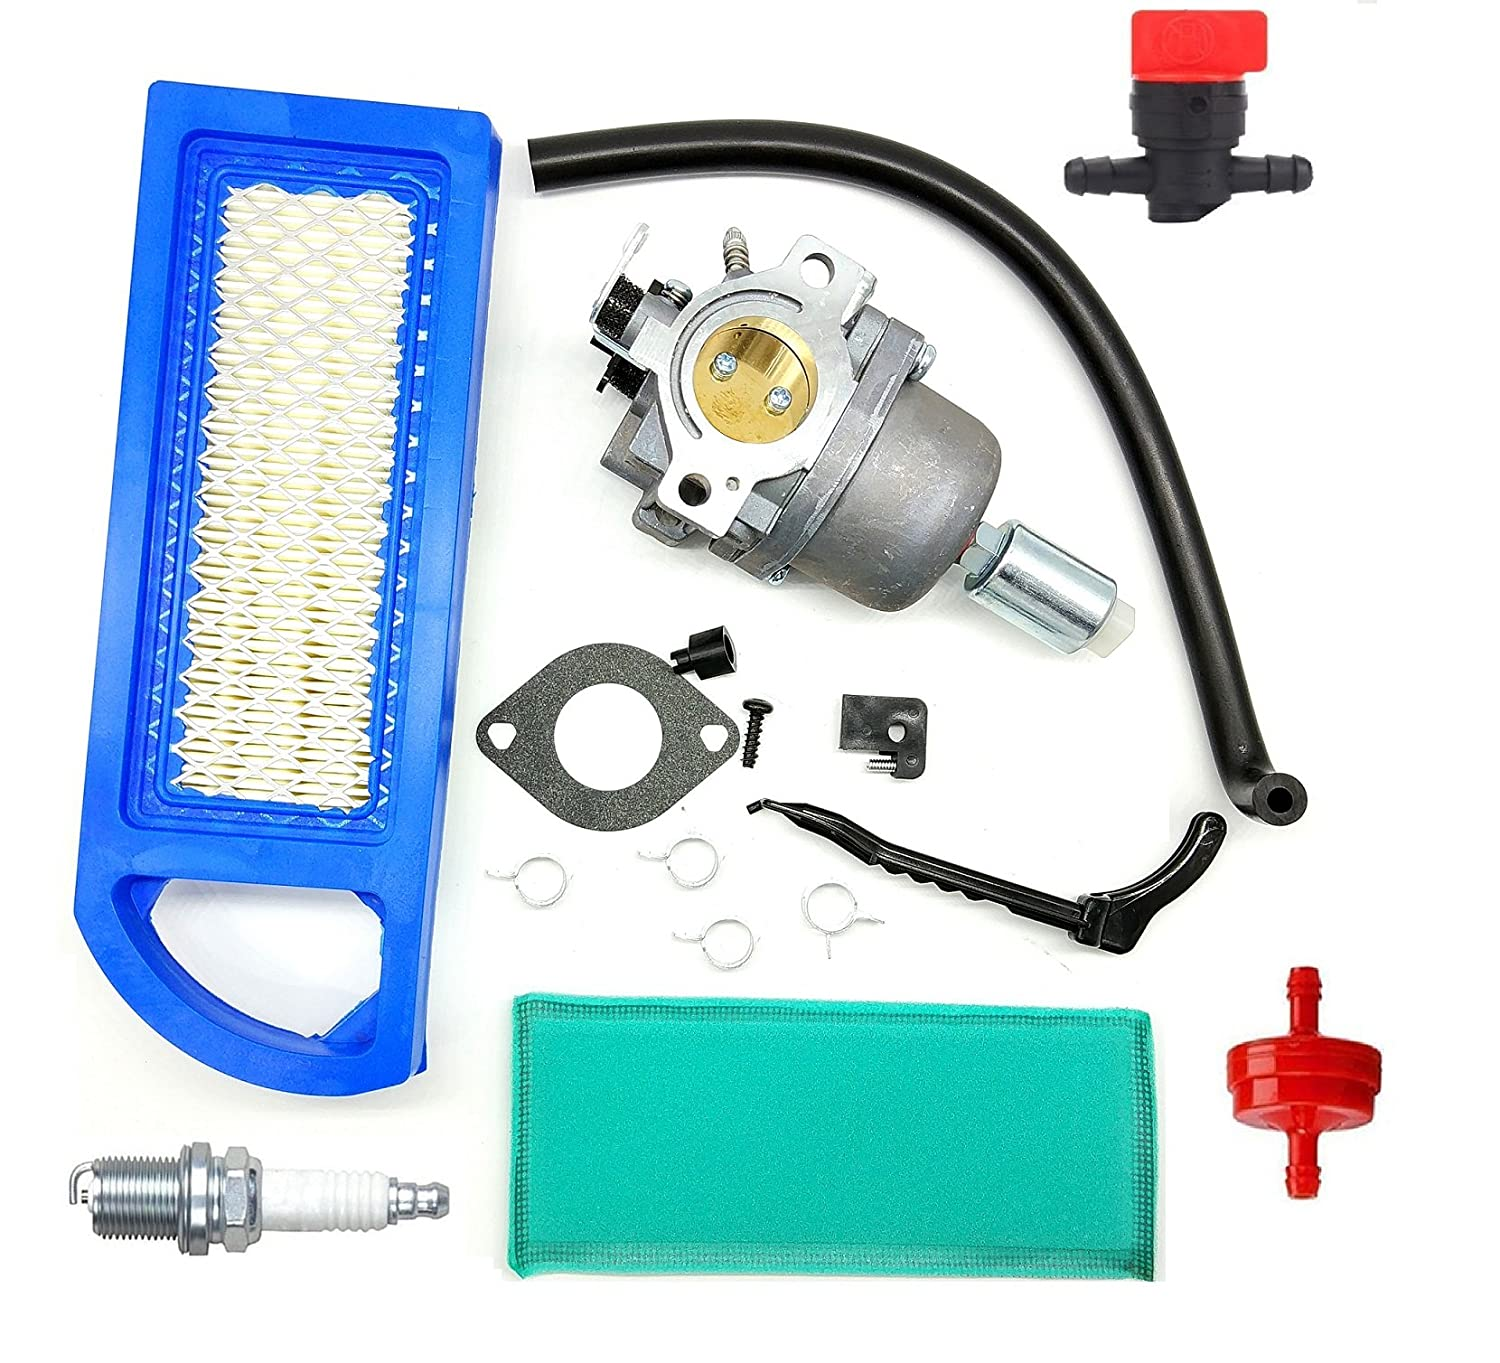 mdairc 794572 Carburetor with Air Fuel Filter Line Spark Plug for Briggs & Stratton 791858 791888 792358 793224 697190 697141 698445 Intek 14-18hp Carb 31A507